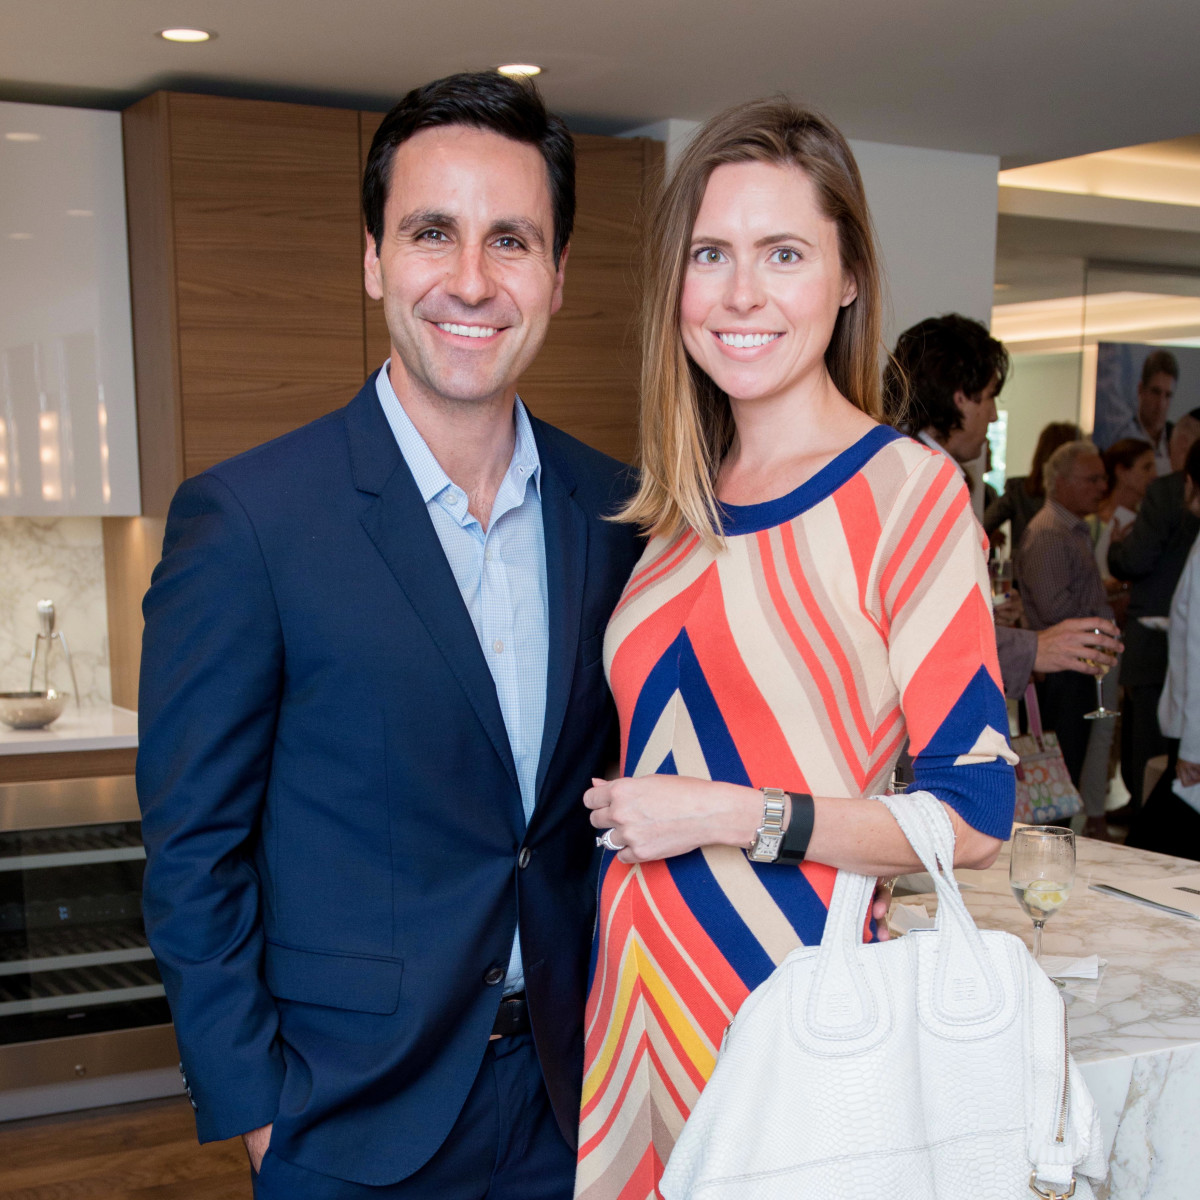 Houston, The River Oaks High Rise Preview Party, June 2015, Jock and Jill Naponic